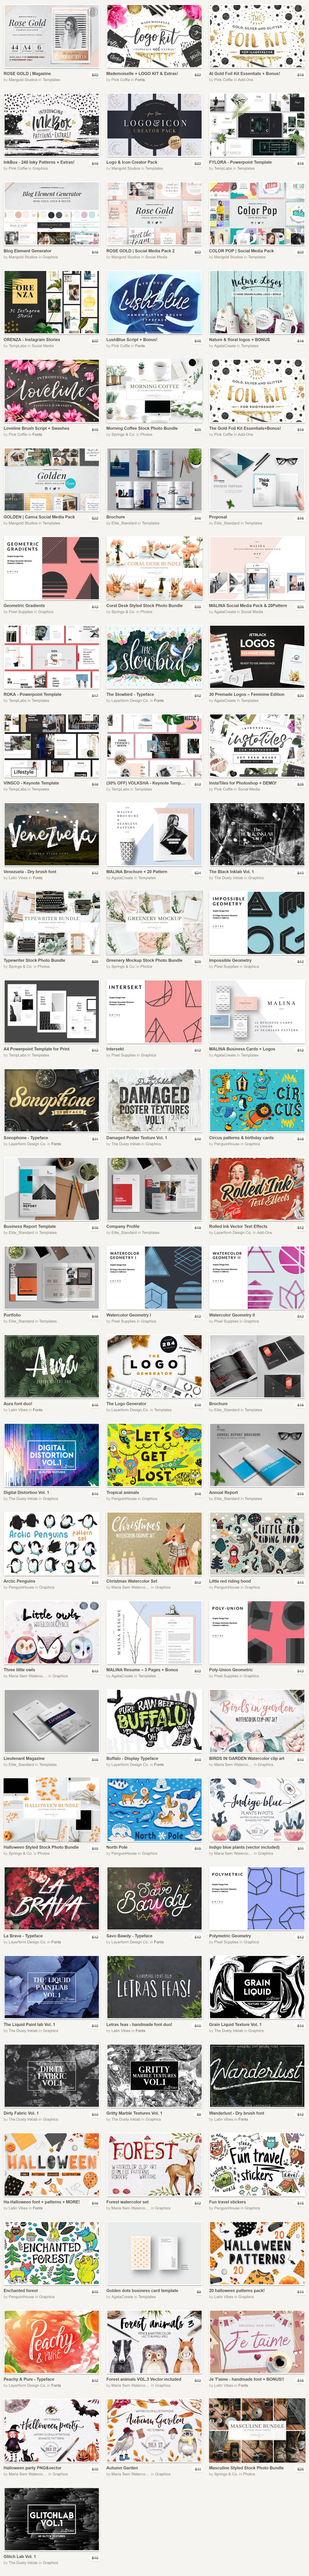 Big bundle of 88 incredible design products from Creative Market.